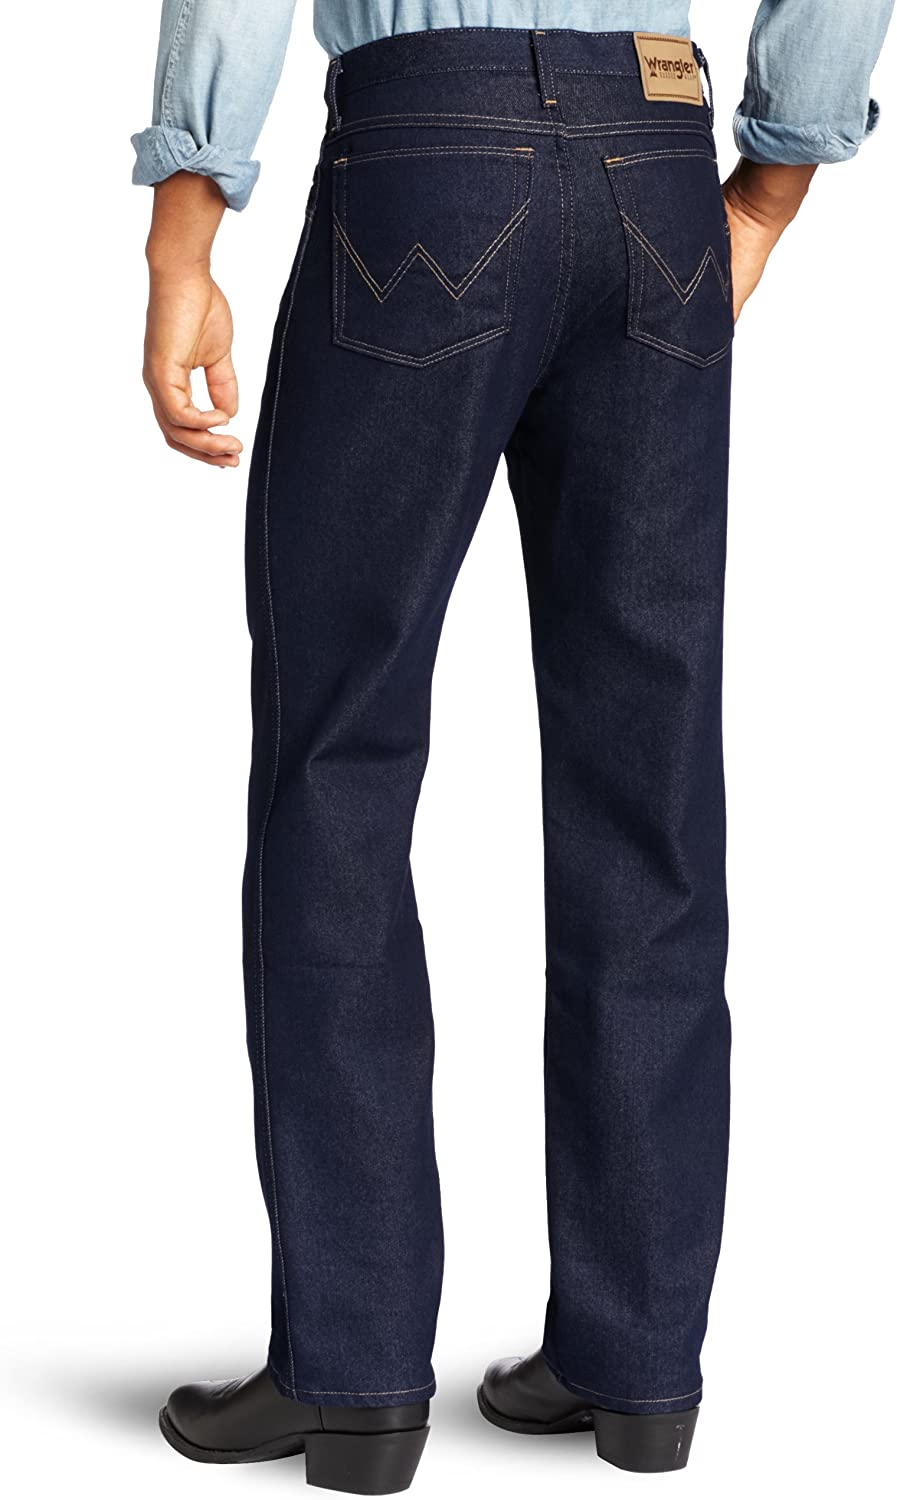 Wrangler Mens Big /& Tall Rugged Wear Regular-Fit Stretch Jean